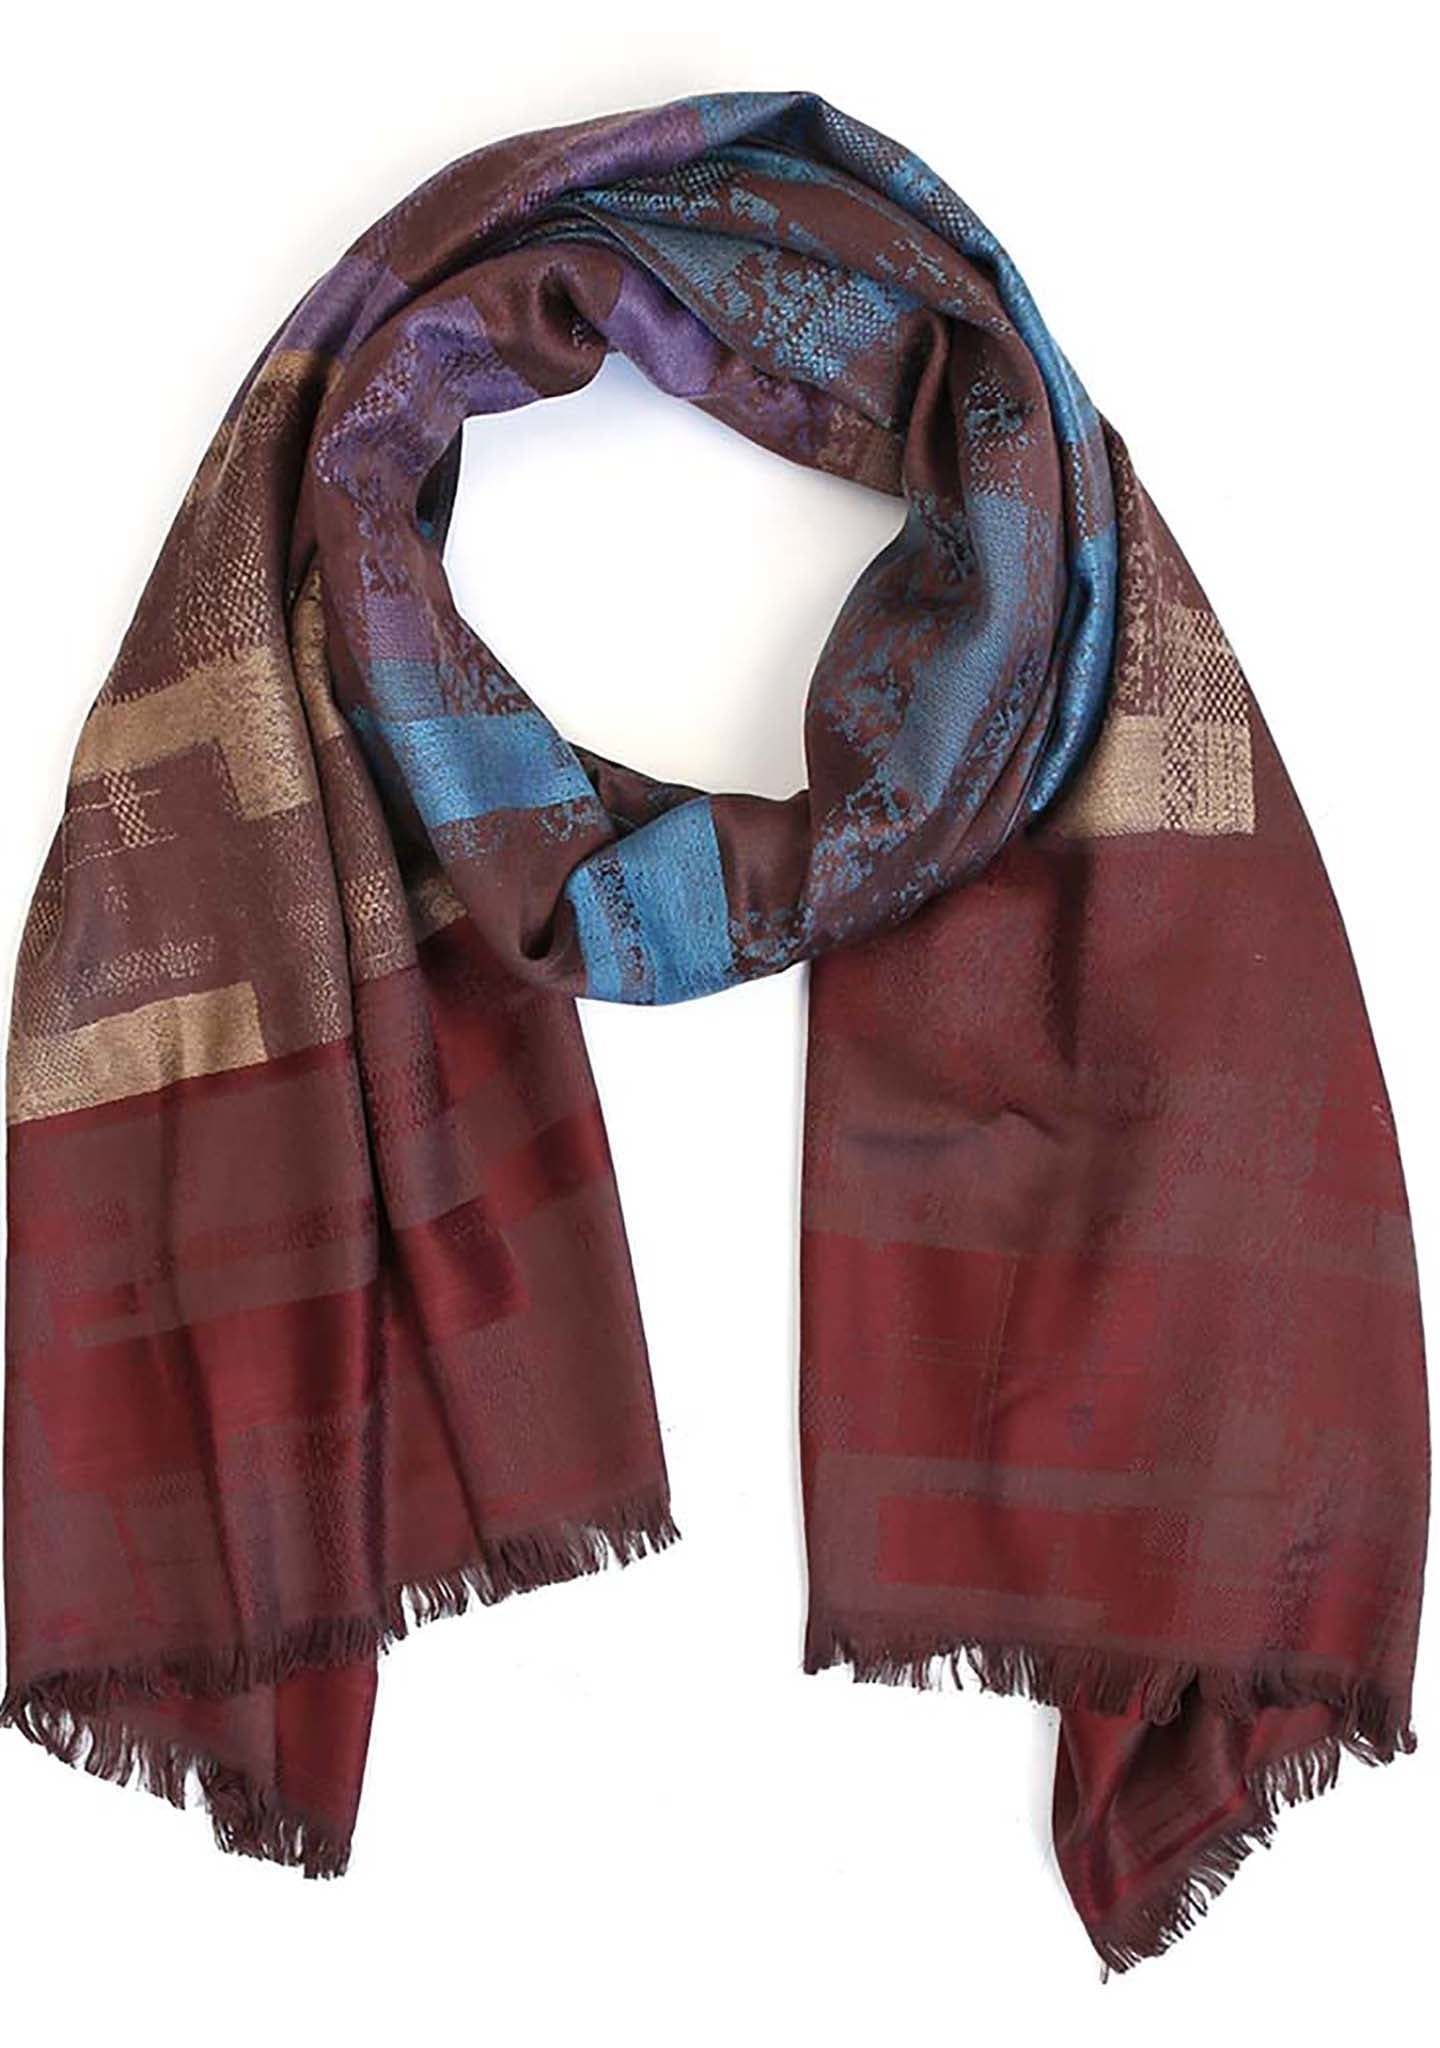 7 LUXE Color Block Scarf in Wine